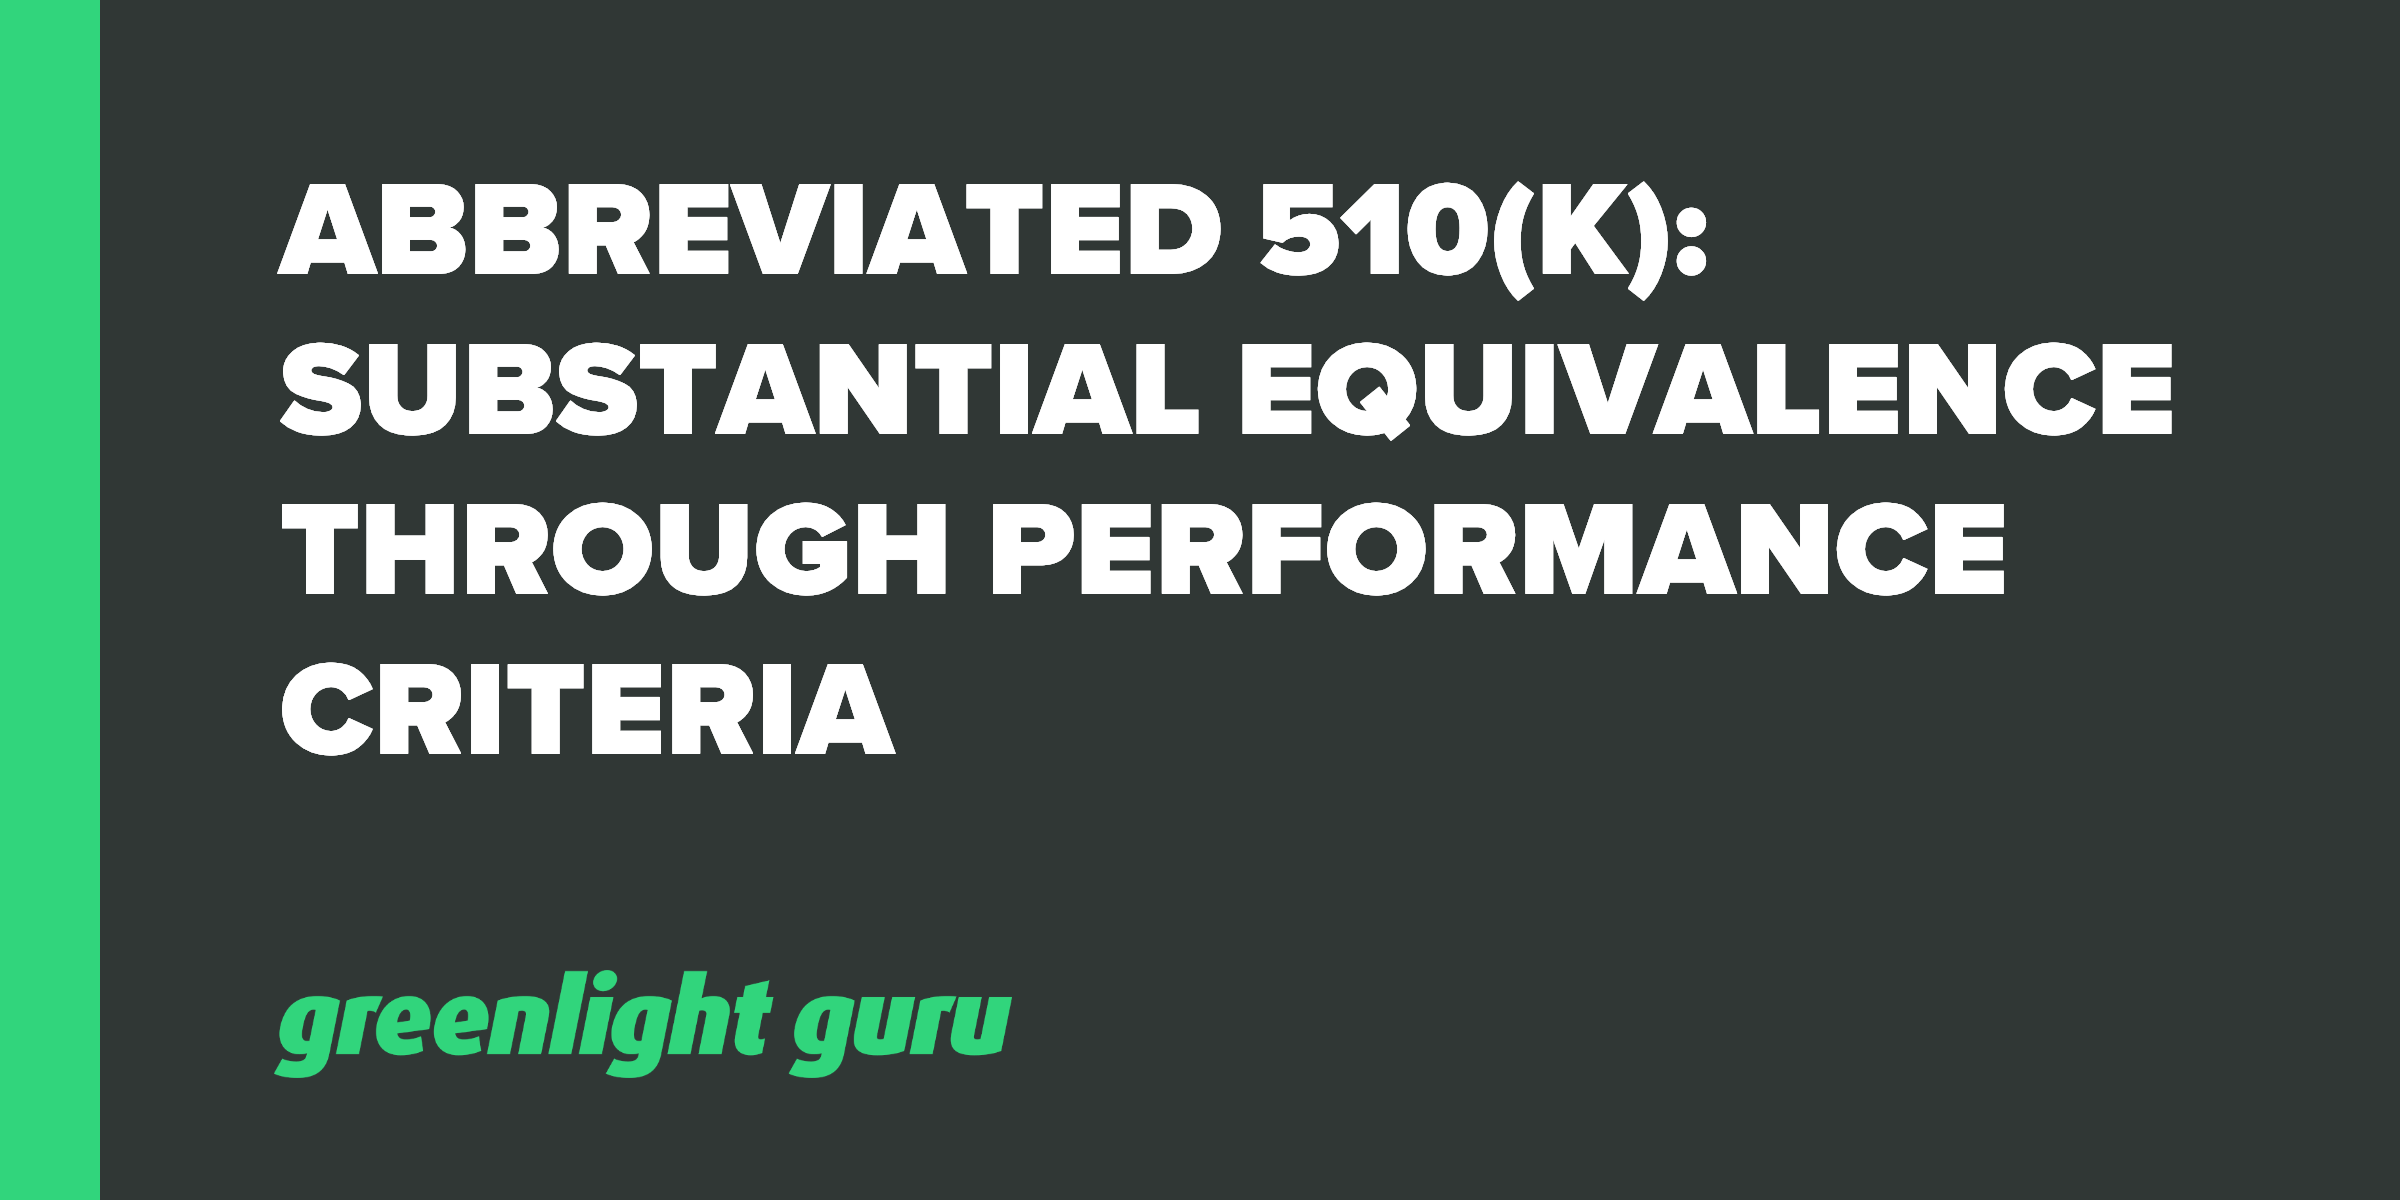 Abbreviated 510(k)_ Substantial Equivalence Through Performance Criteria